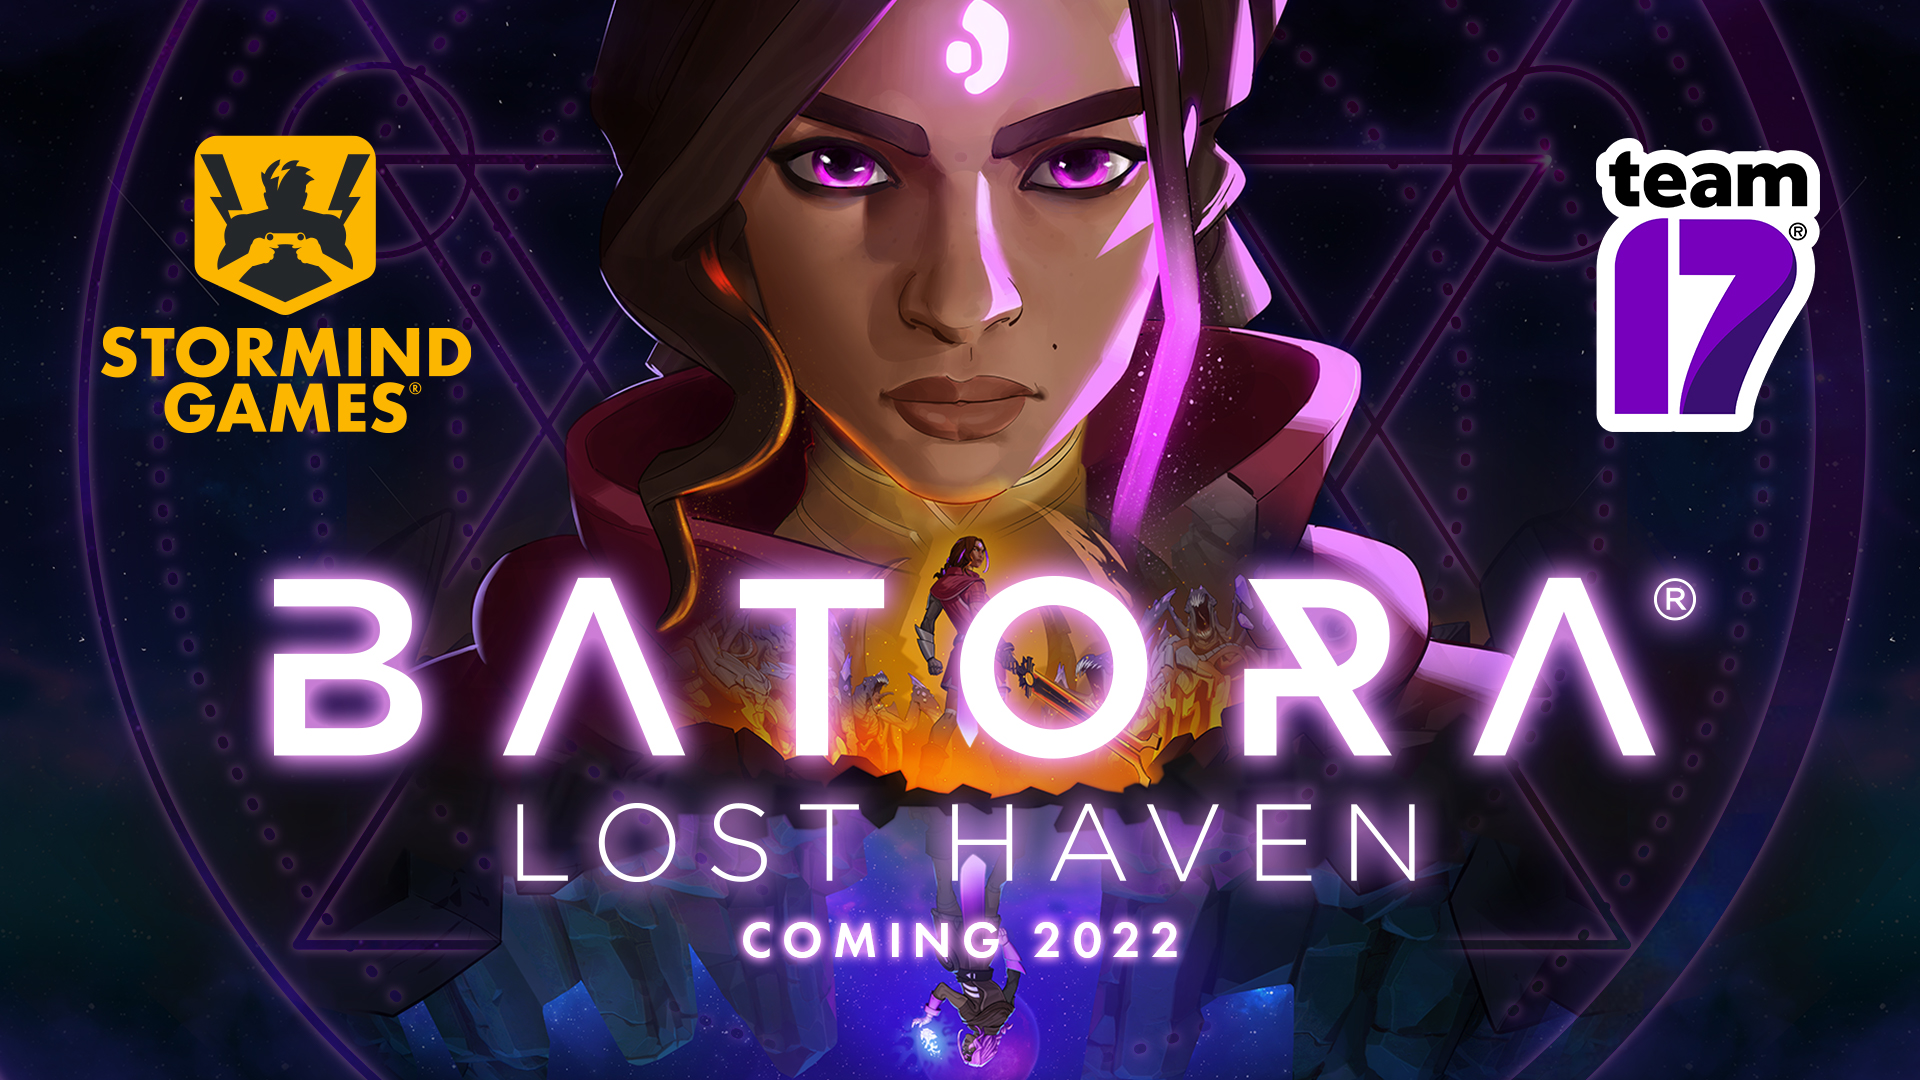 Team17 and Stormind Games will bring Batora: Lost Haven to PC and consoles in 2022!